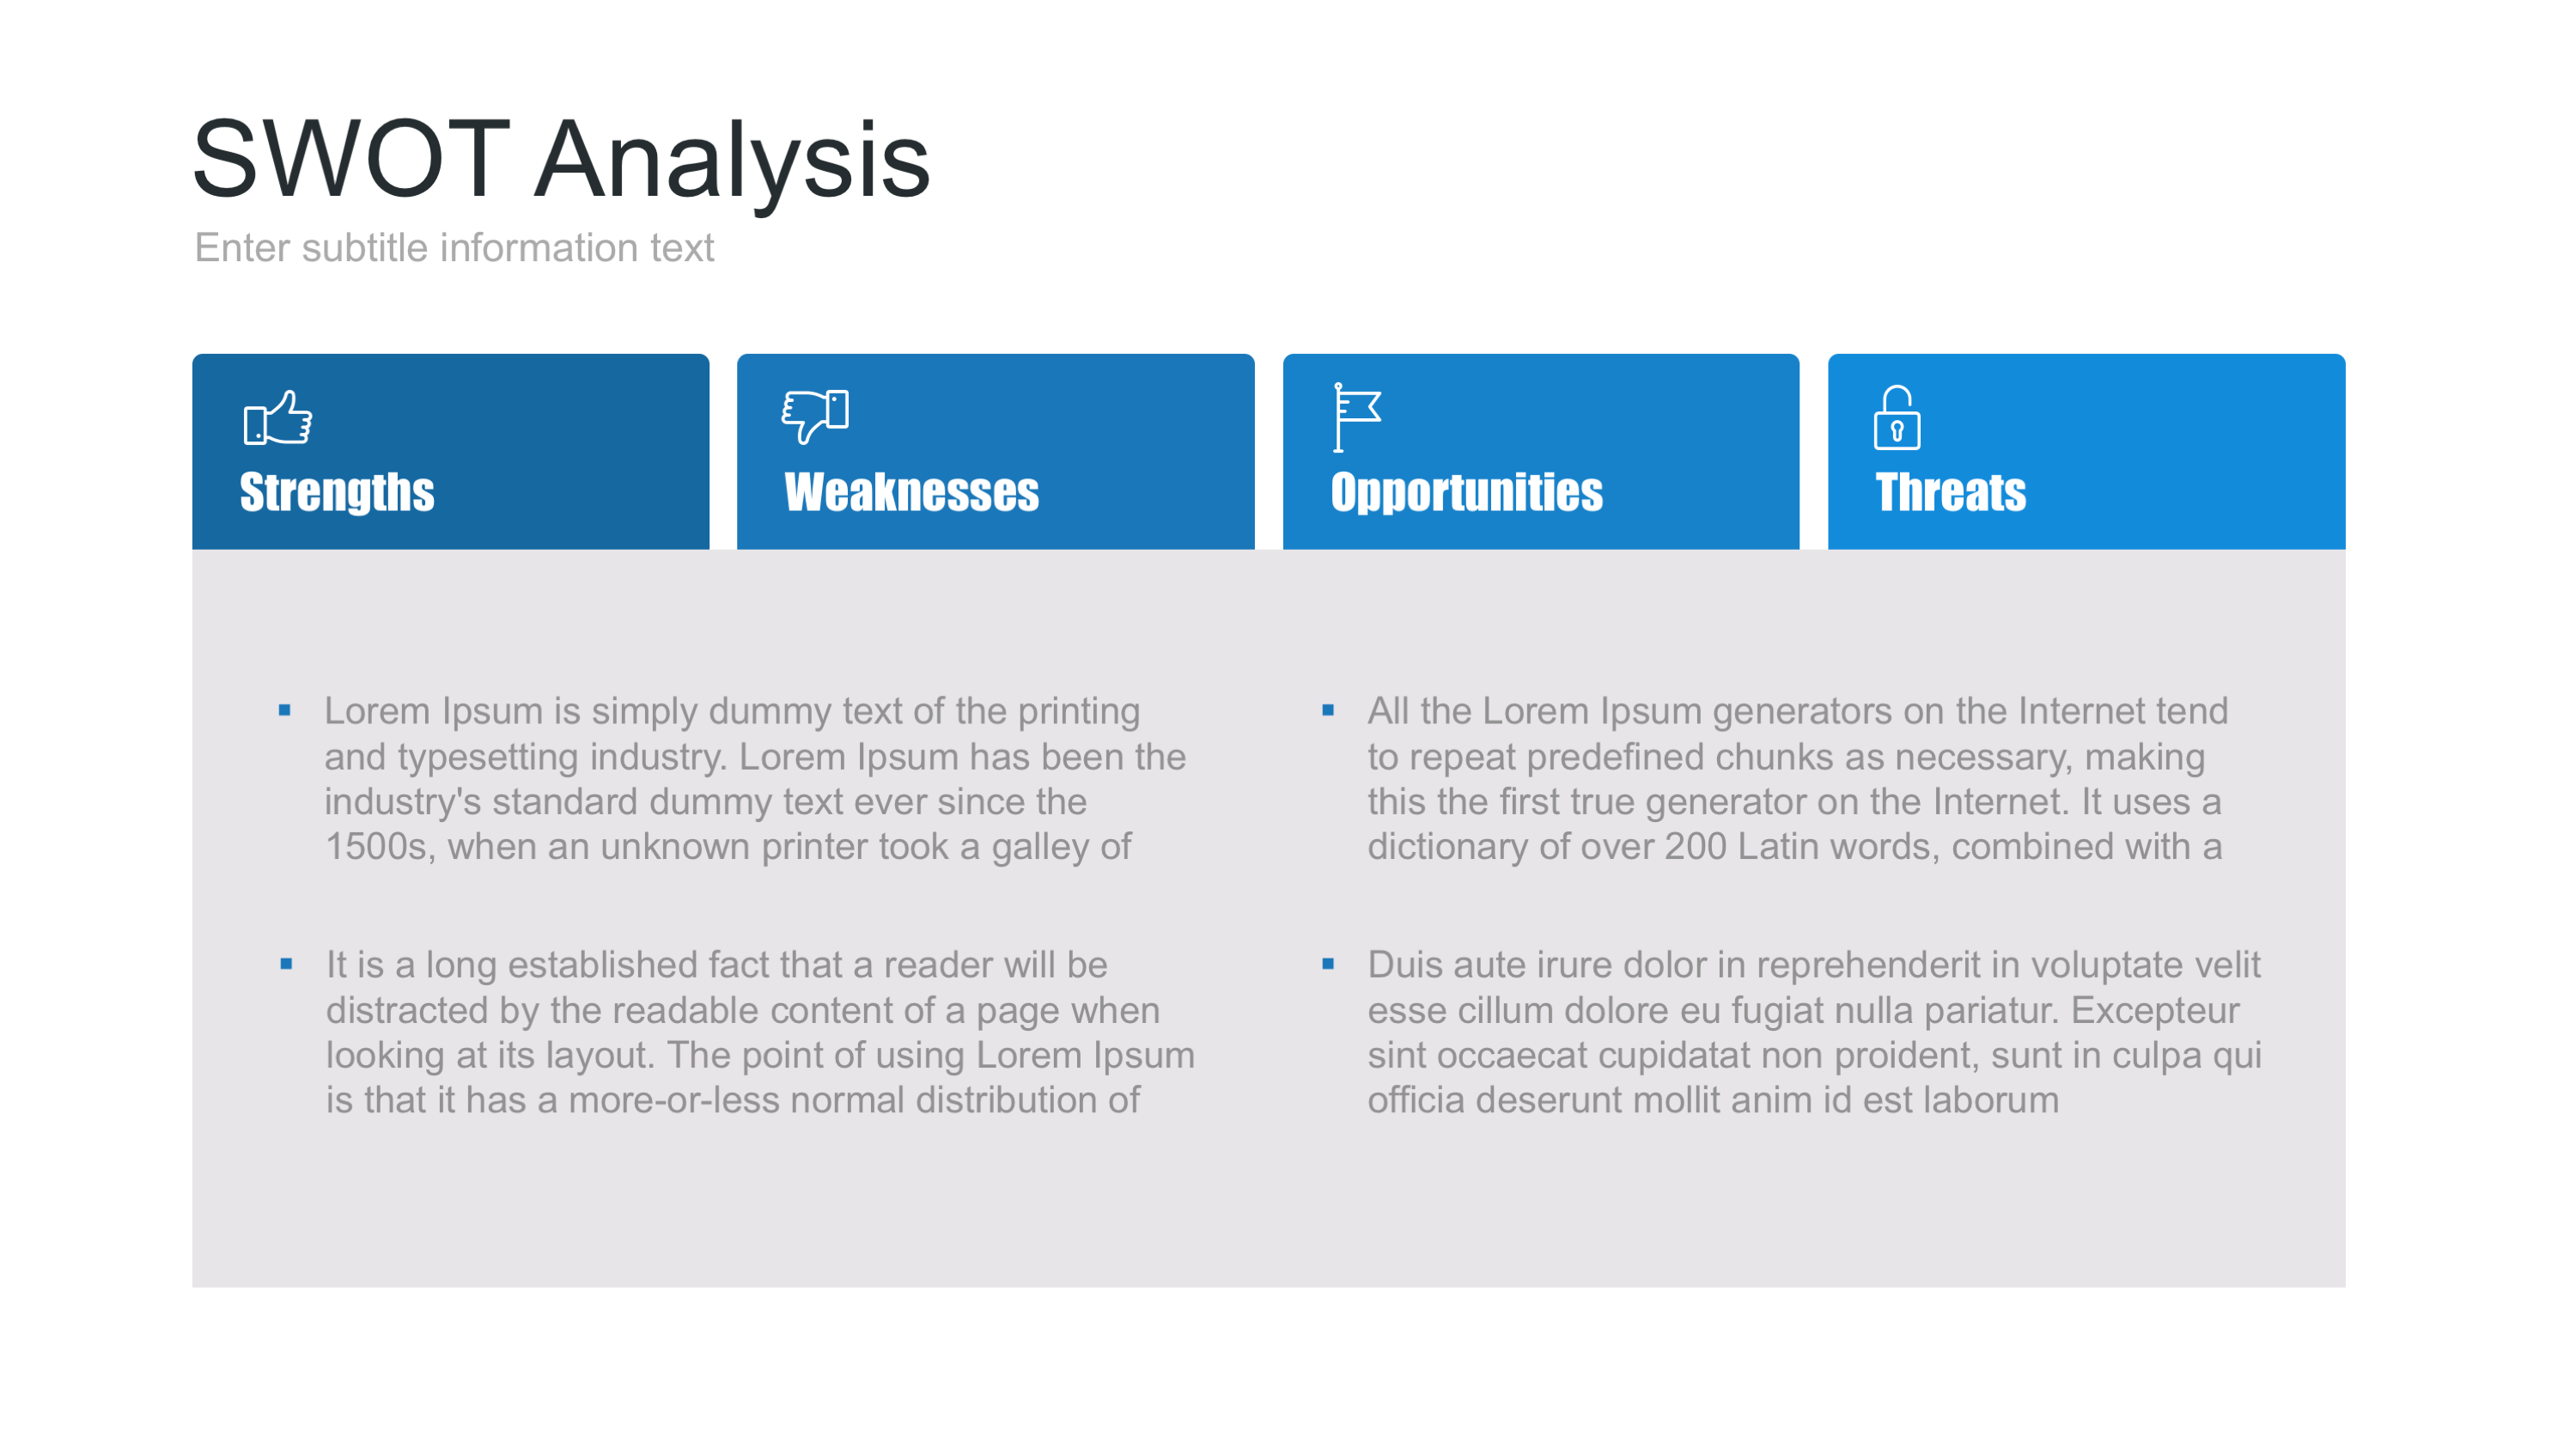 Swot analysis keynote template by site2max graphicriver for Swot analysis for t shirt business